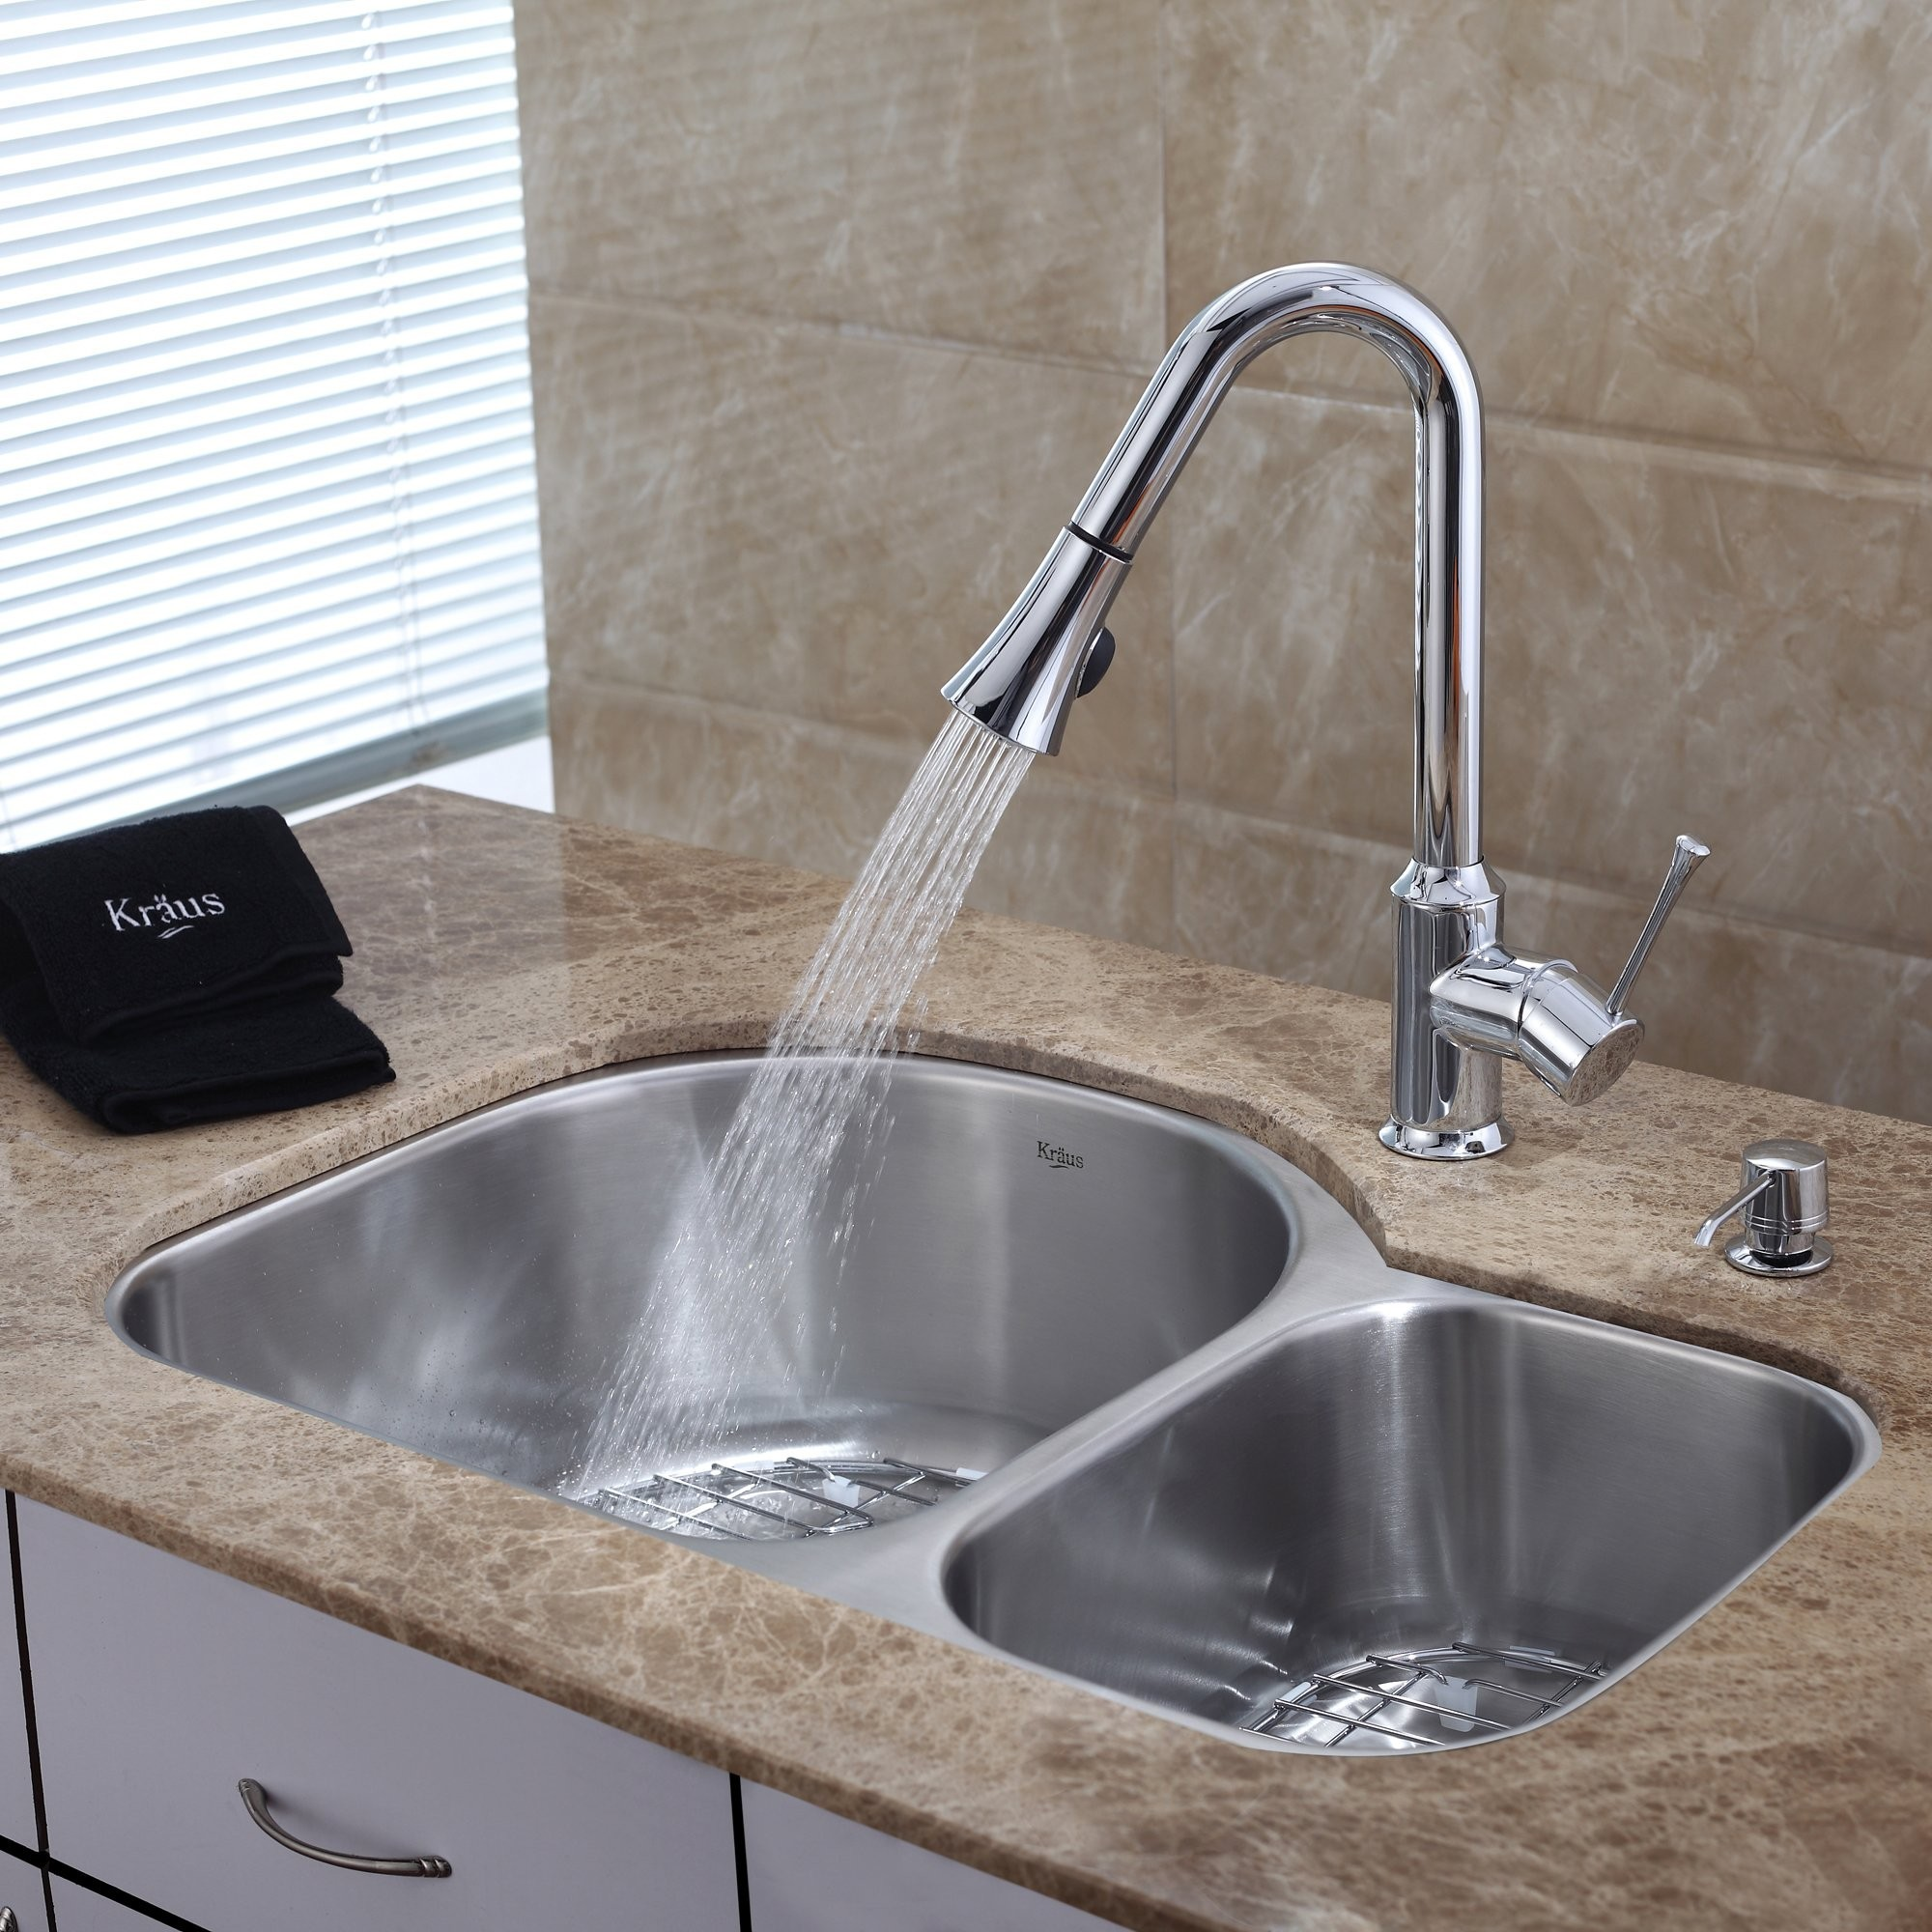 menards kitchen sinks kitchen sinks menards kitchen sink kits